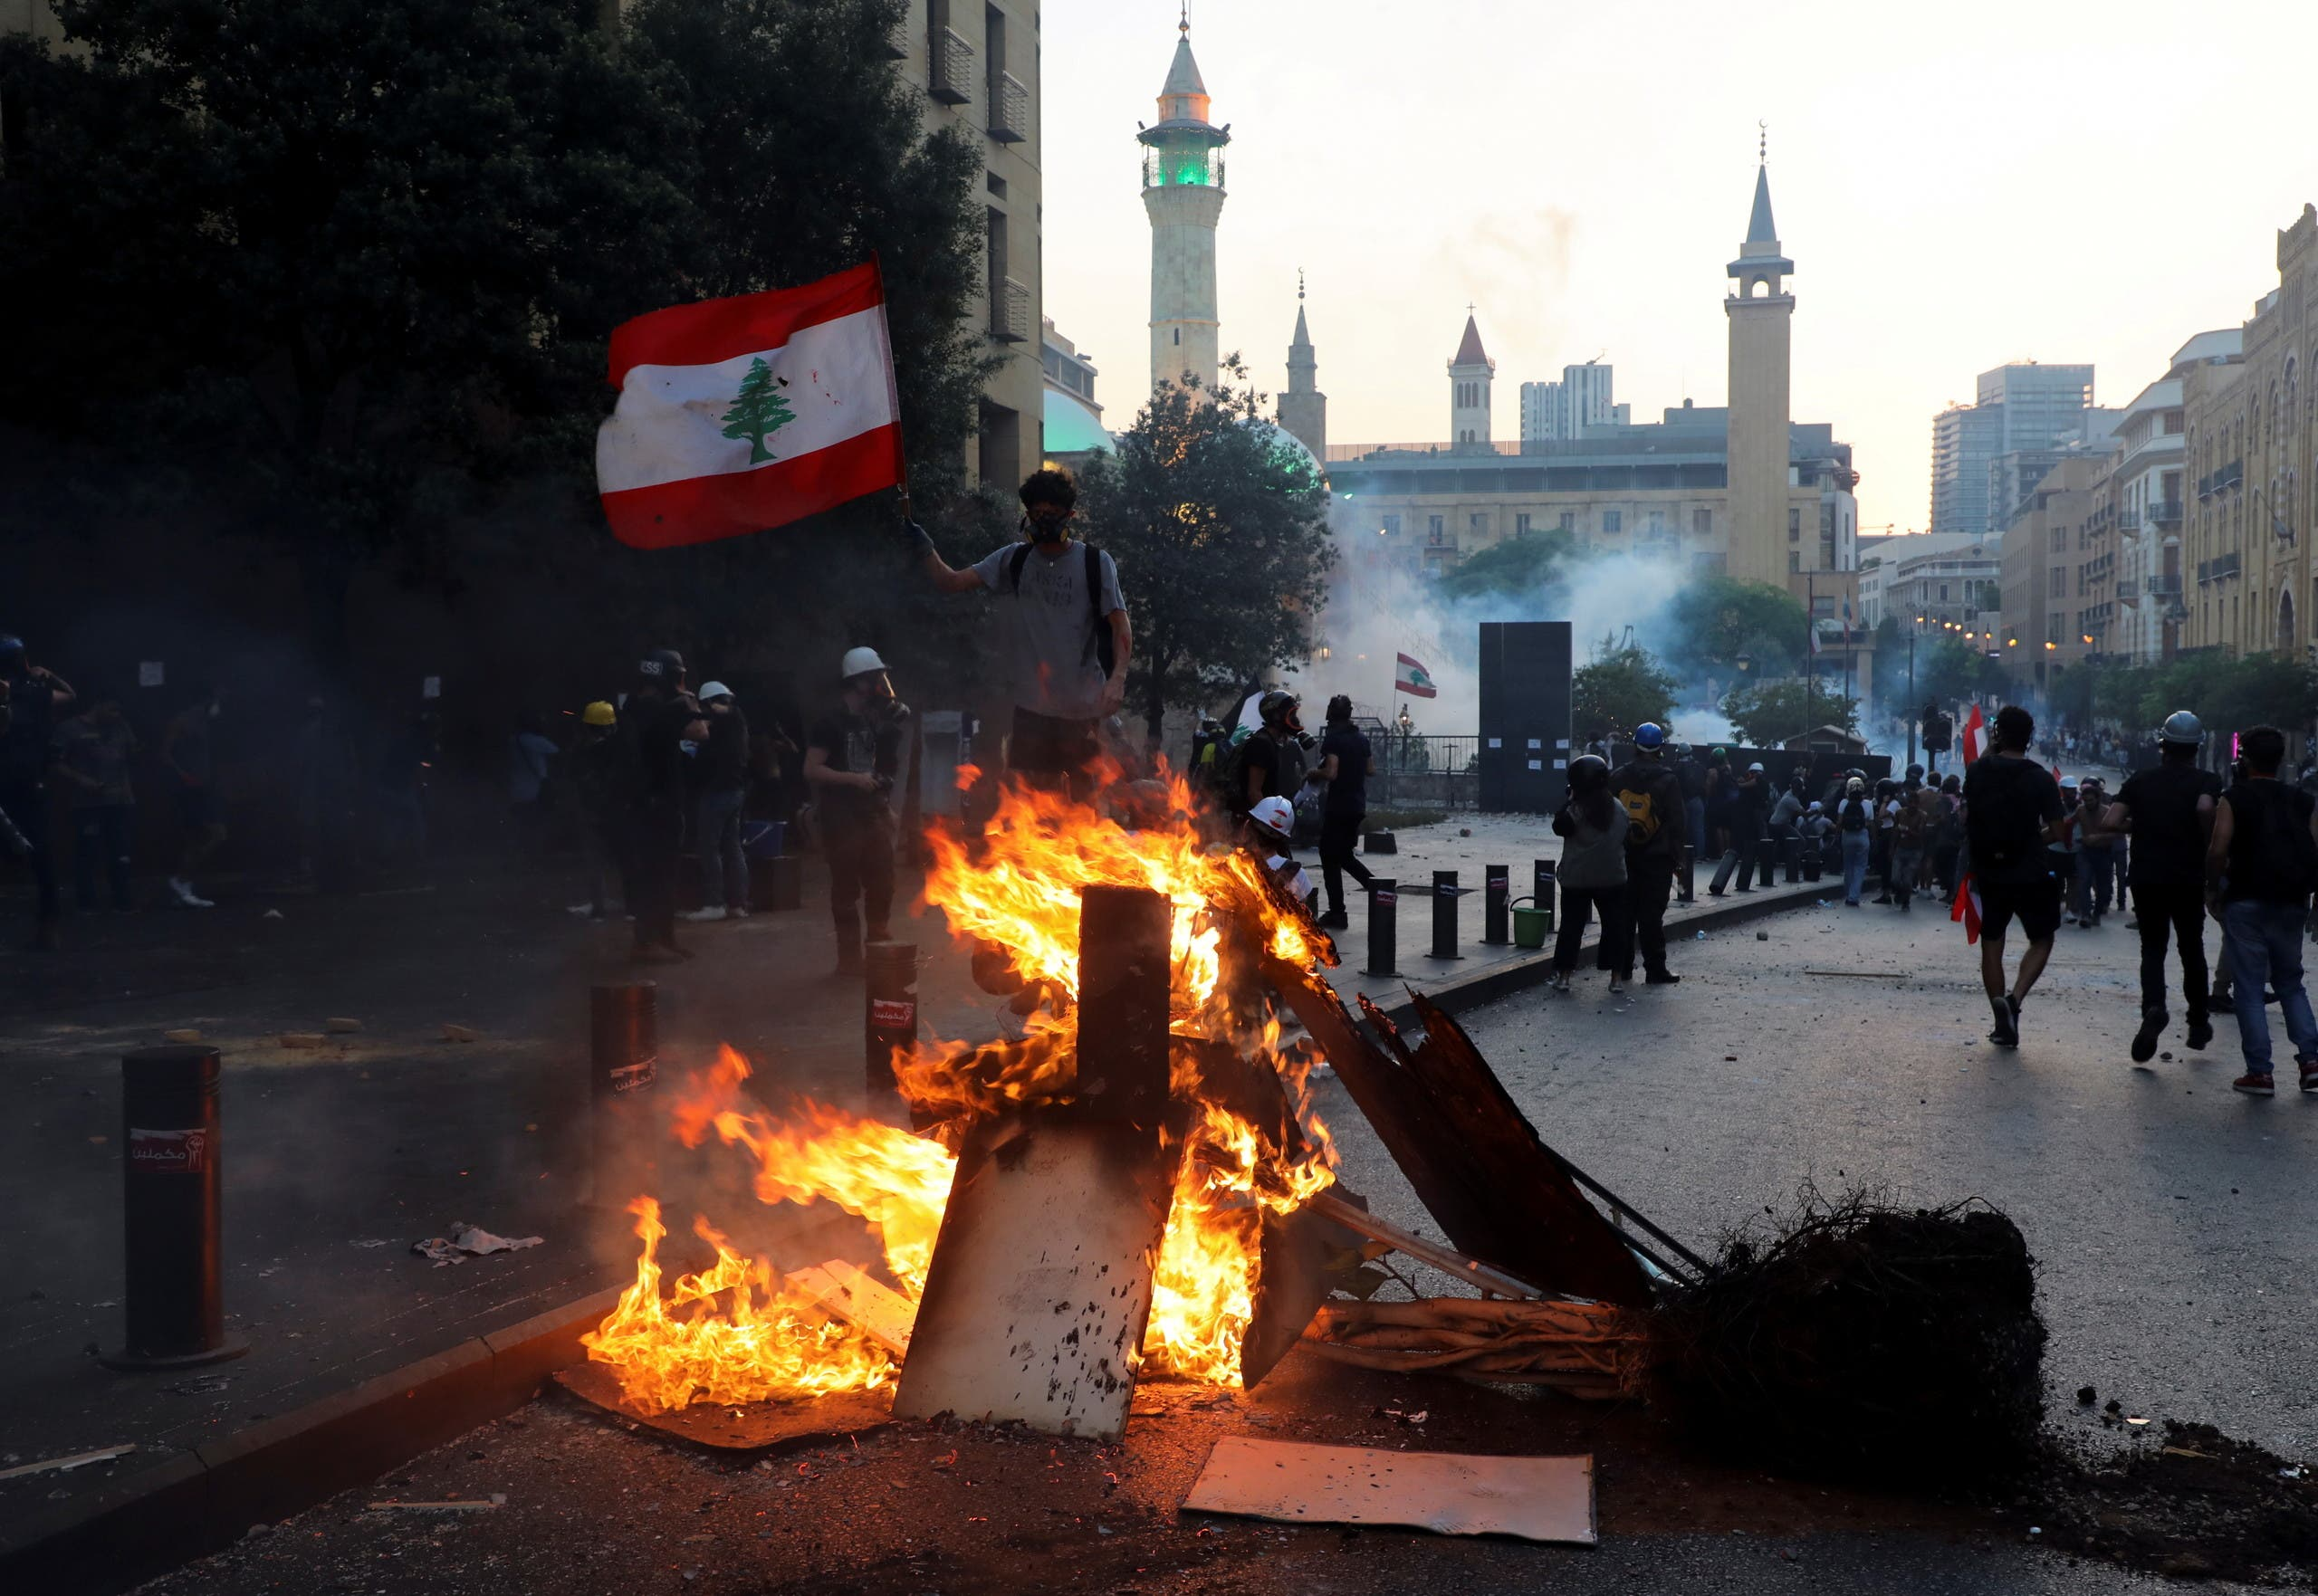 From today's protests in Beirut